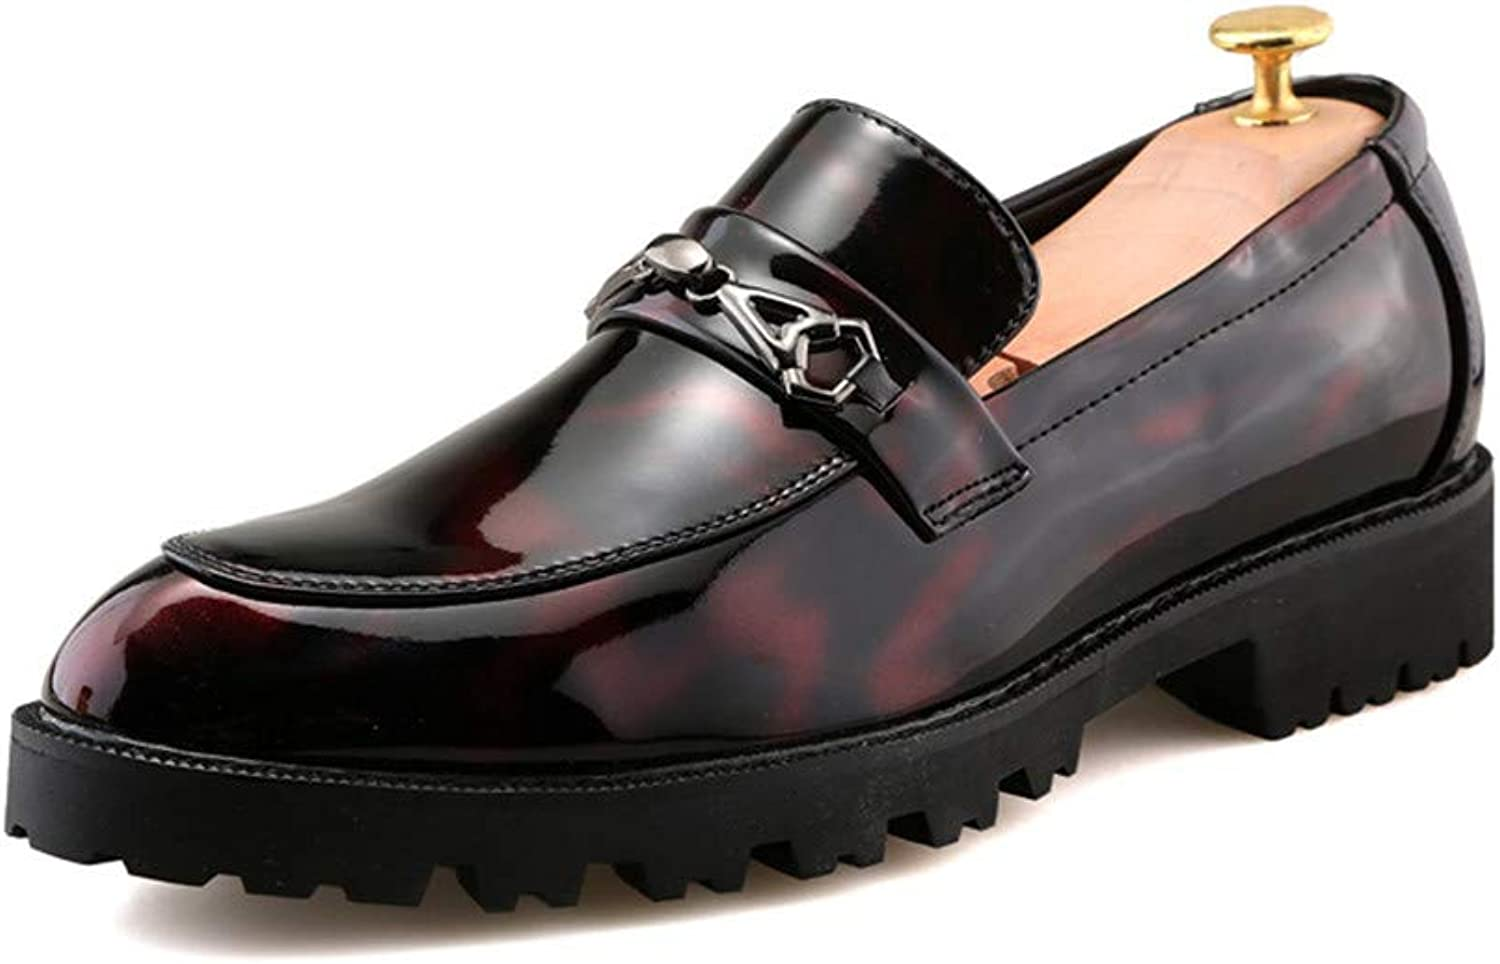 Z.L.F shoes Men's Business Oxford Fashion Round Toe Thick Patent Leather Formal shoes Leather shoes